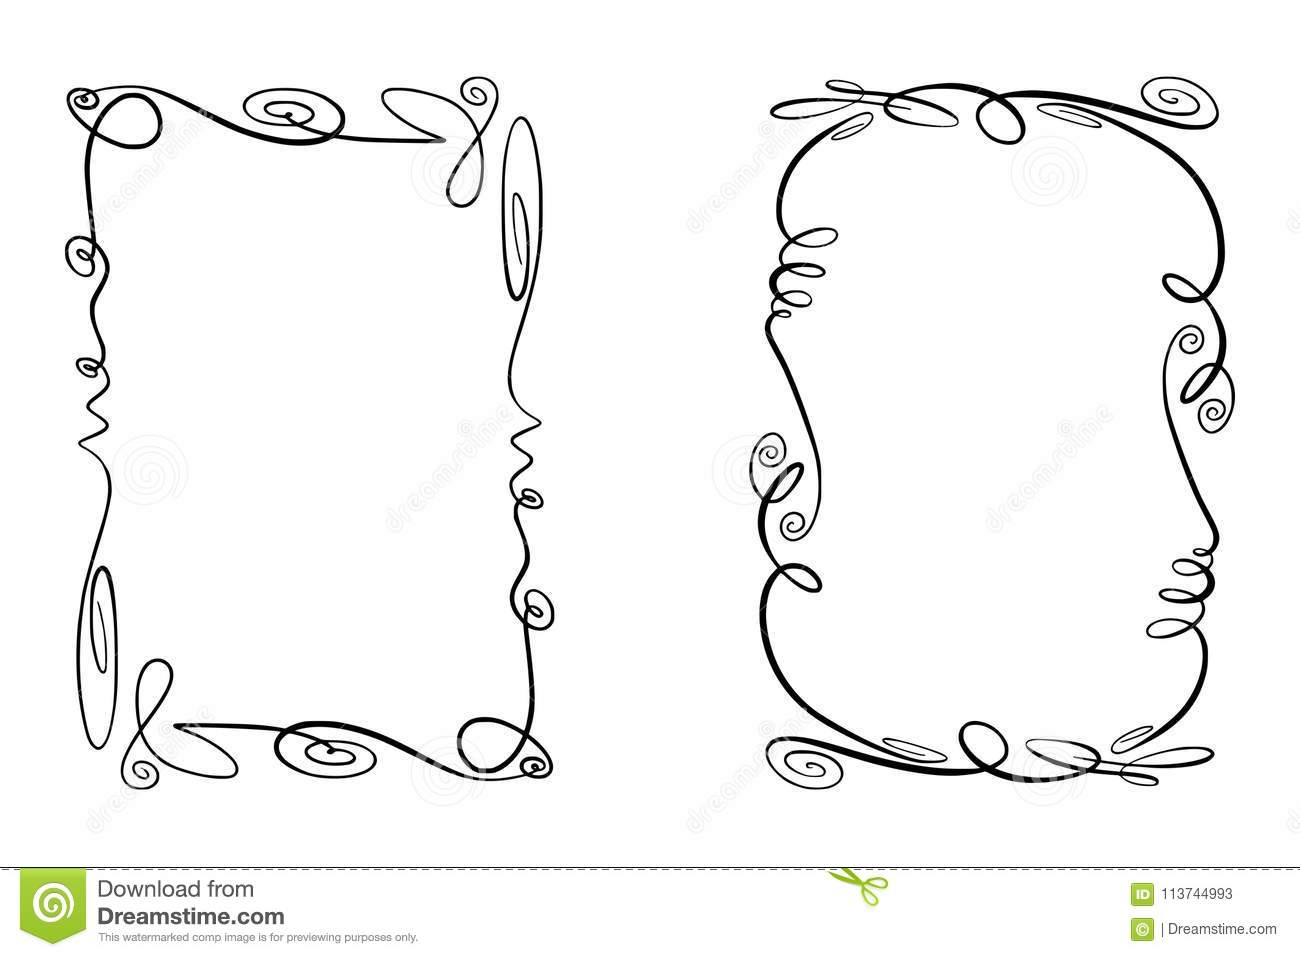 Set of Flourish Vector Frames. Collection of Rectangles with squiggles, twirls and embellishments for image and text